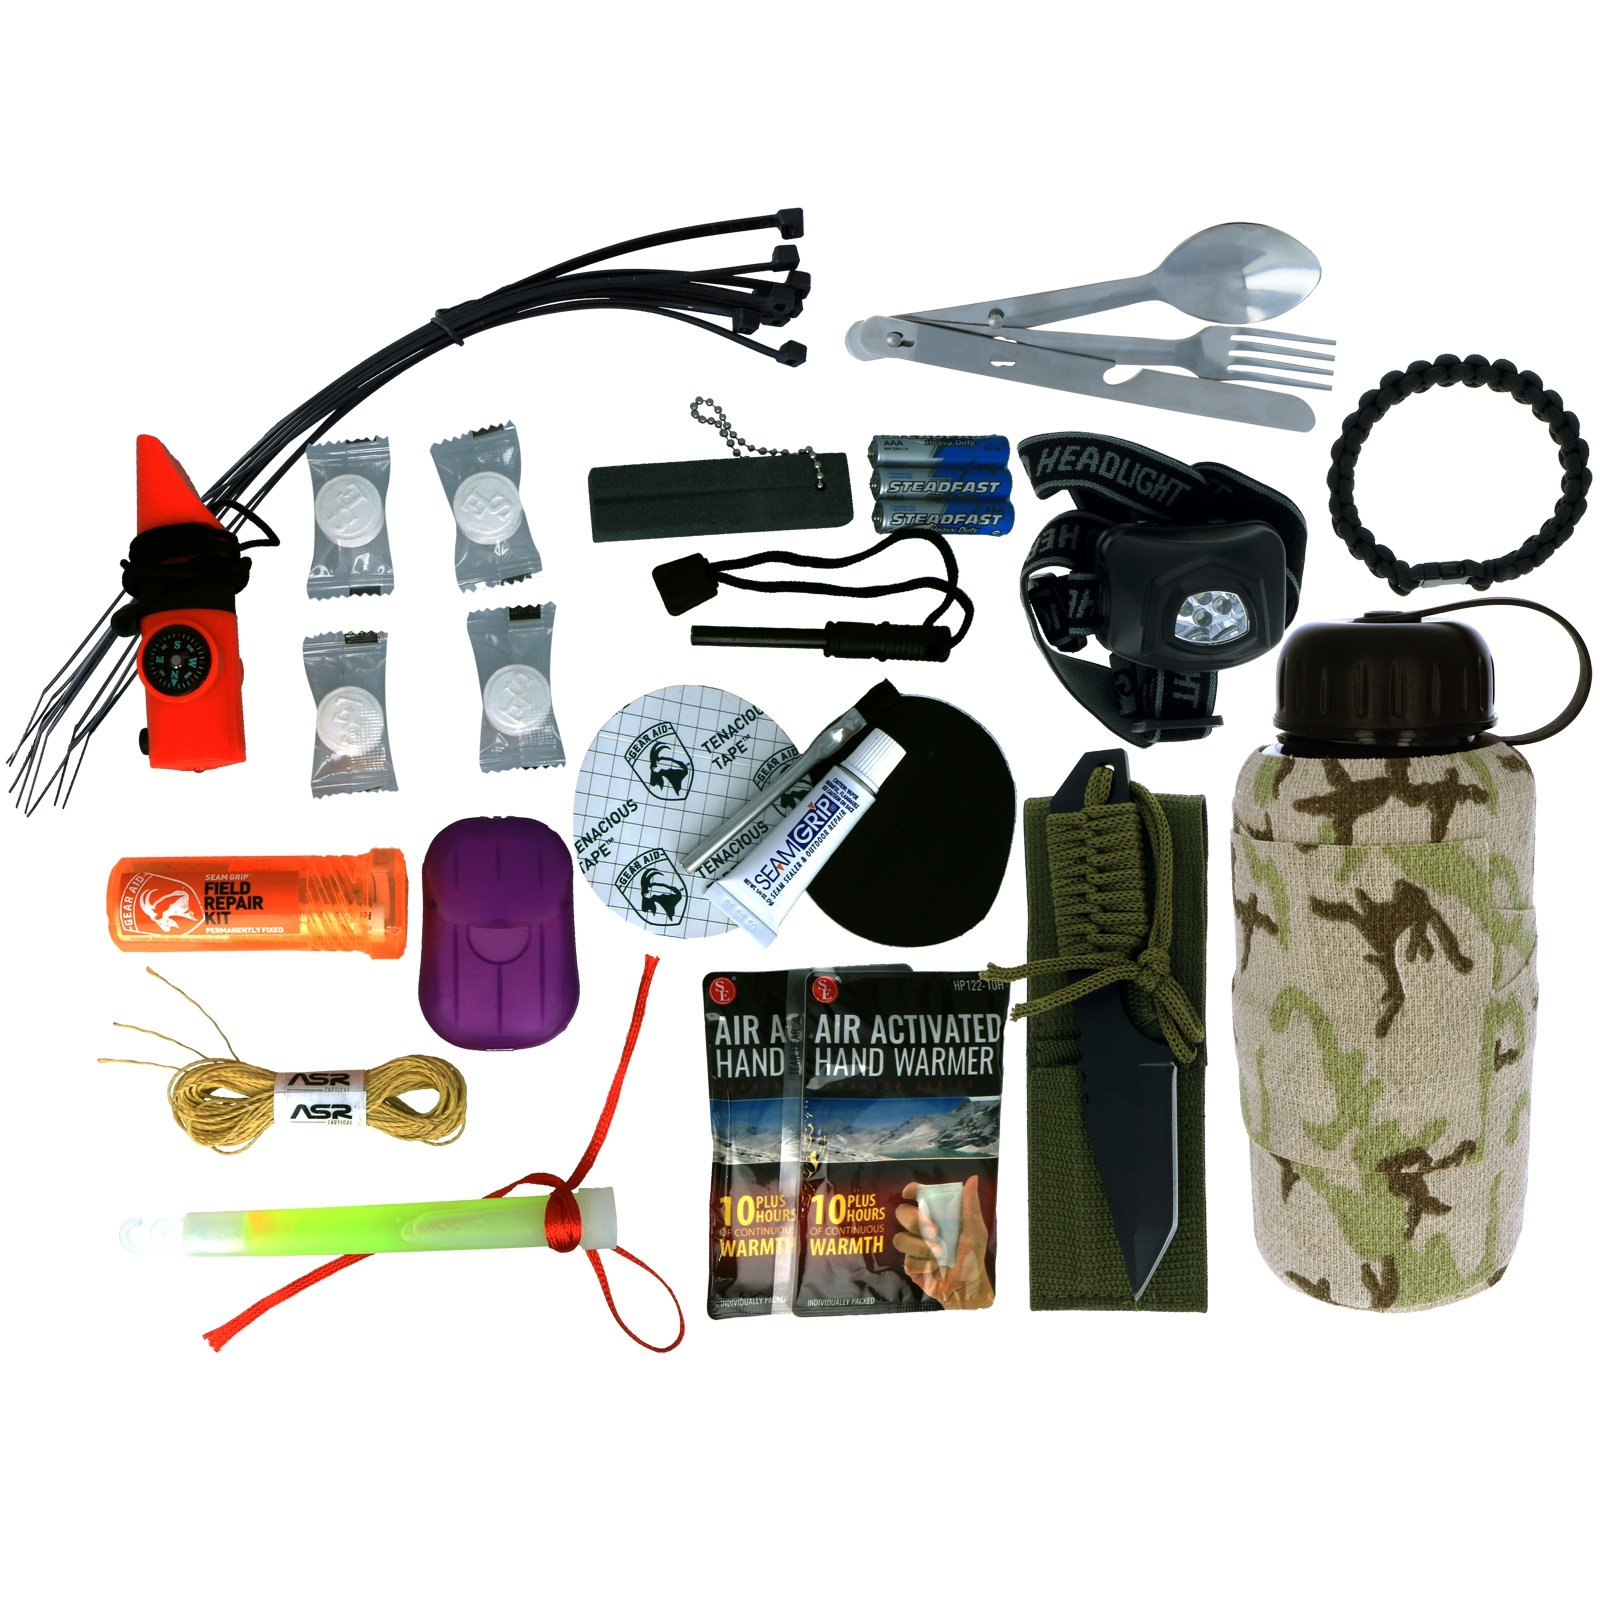 Image result for Tools Camping